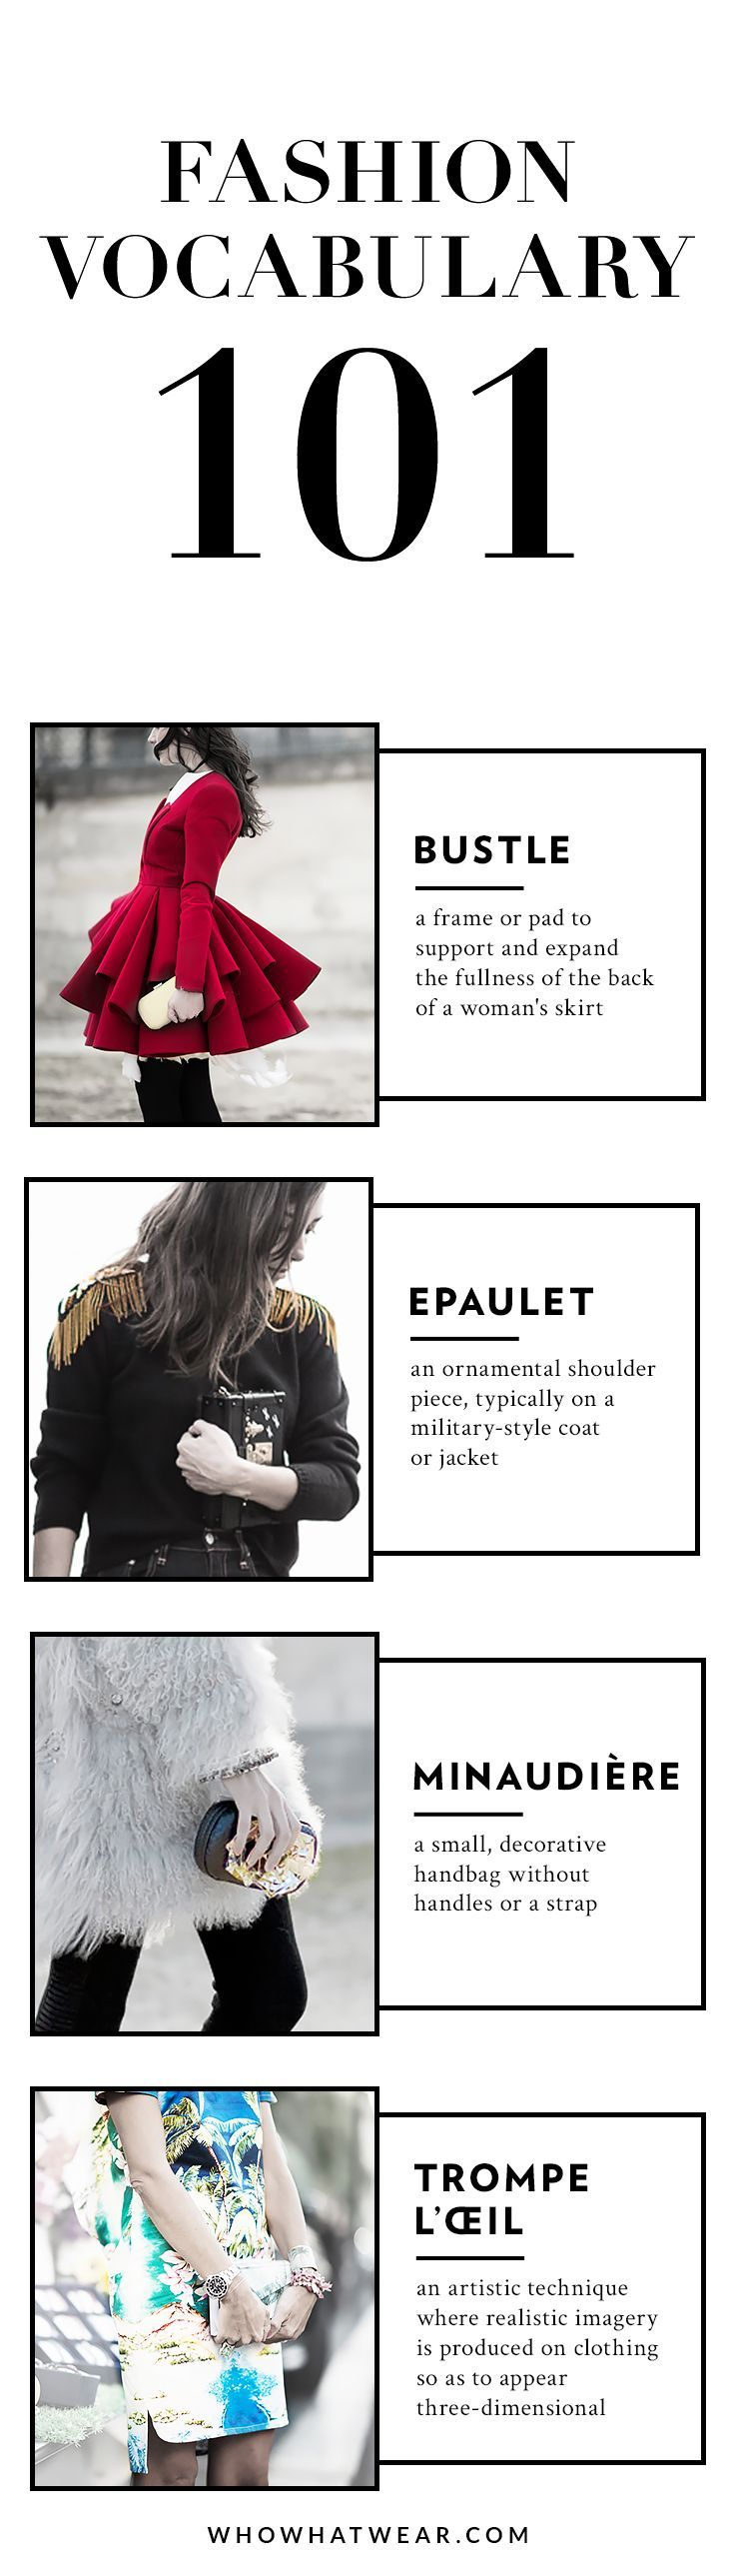 cool 9 Terms Every Fashion Girl Should Know by http://www.redfashiontrends.us/fashion-designers/9-terms-every-fashion-girl-should-know/